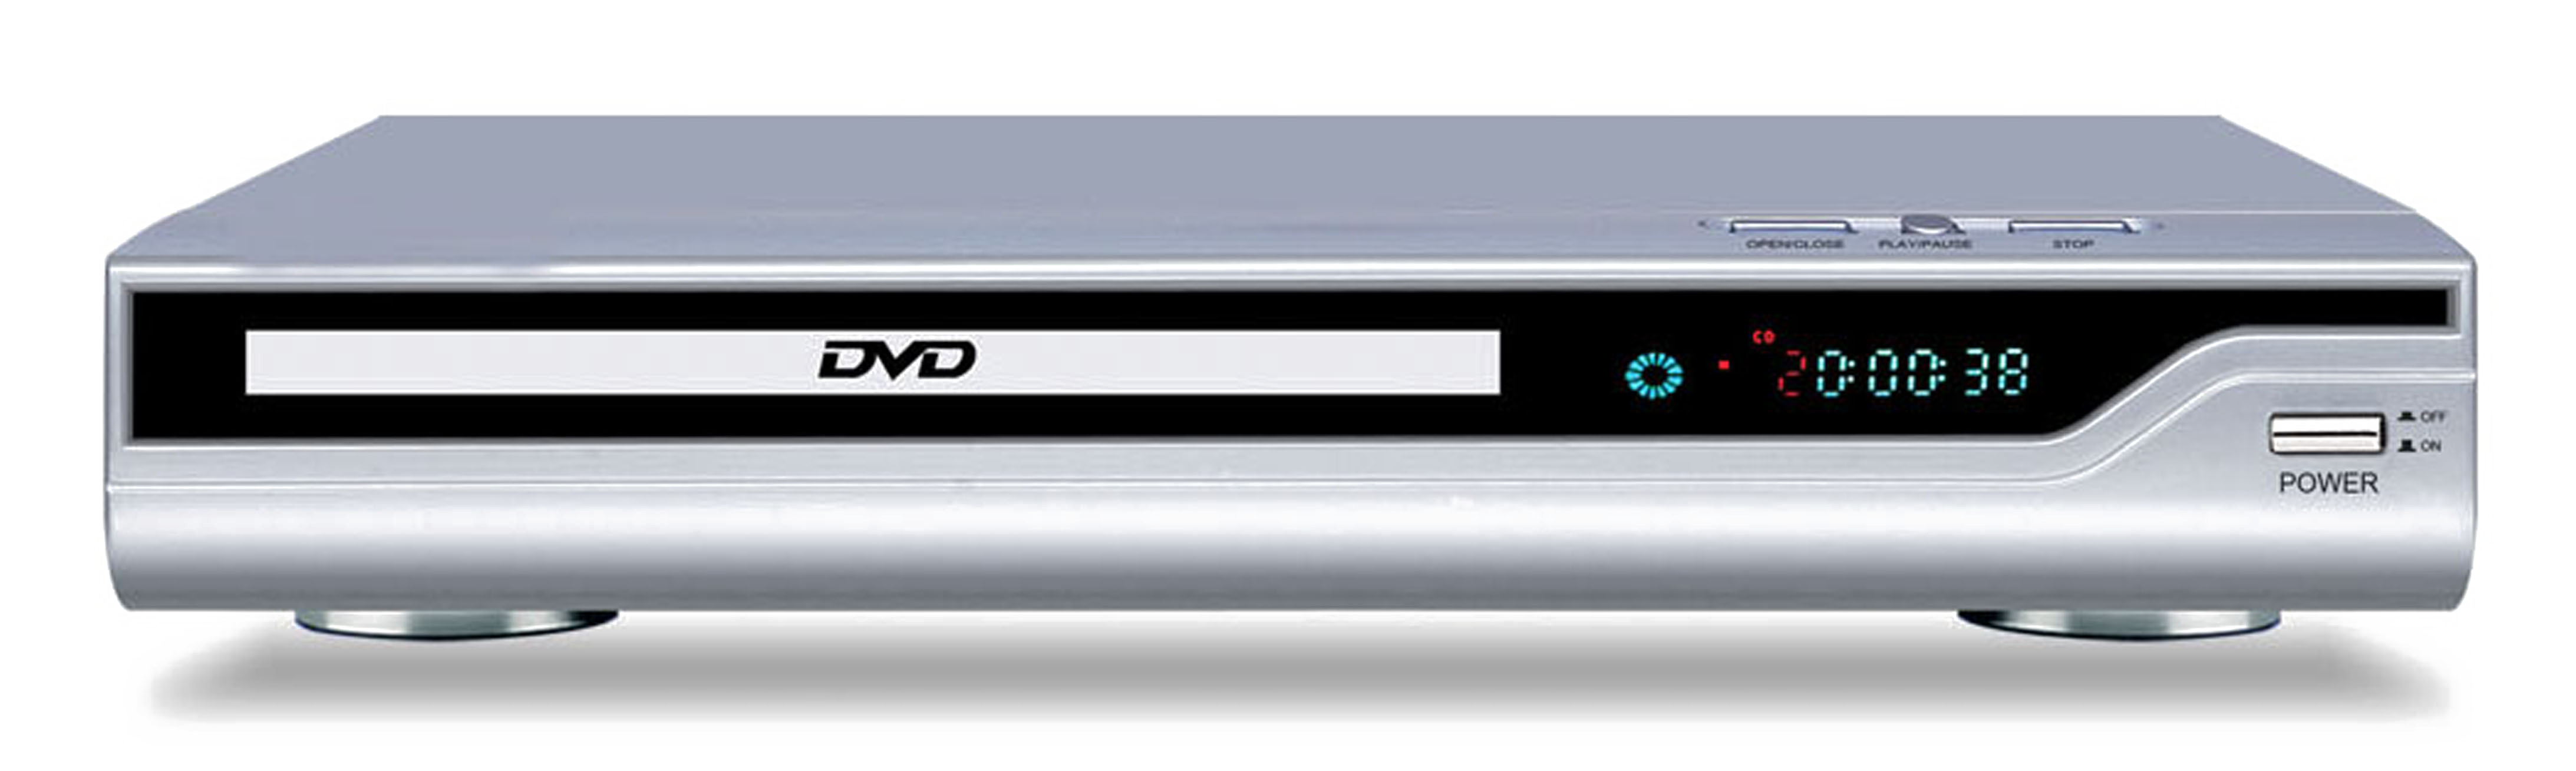 DVD Player PNG Images Transparent Free Download.